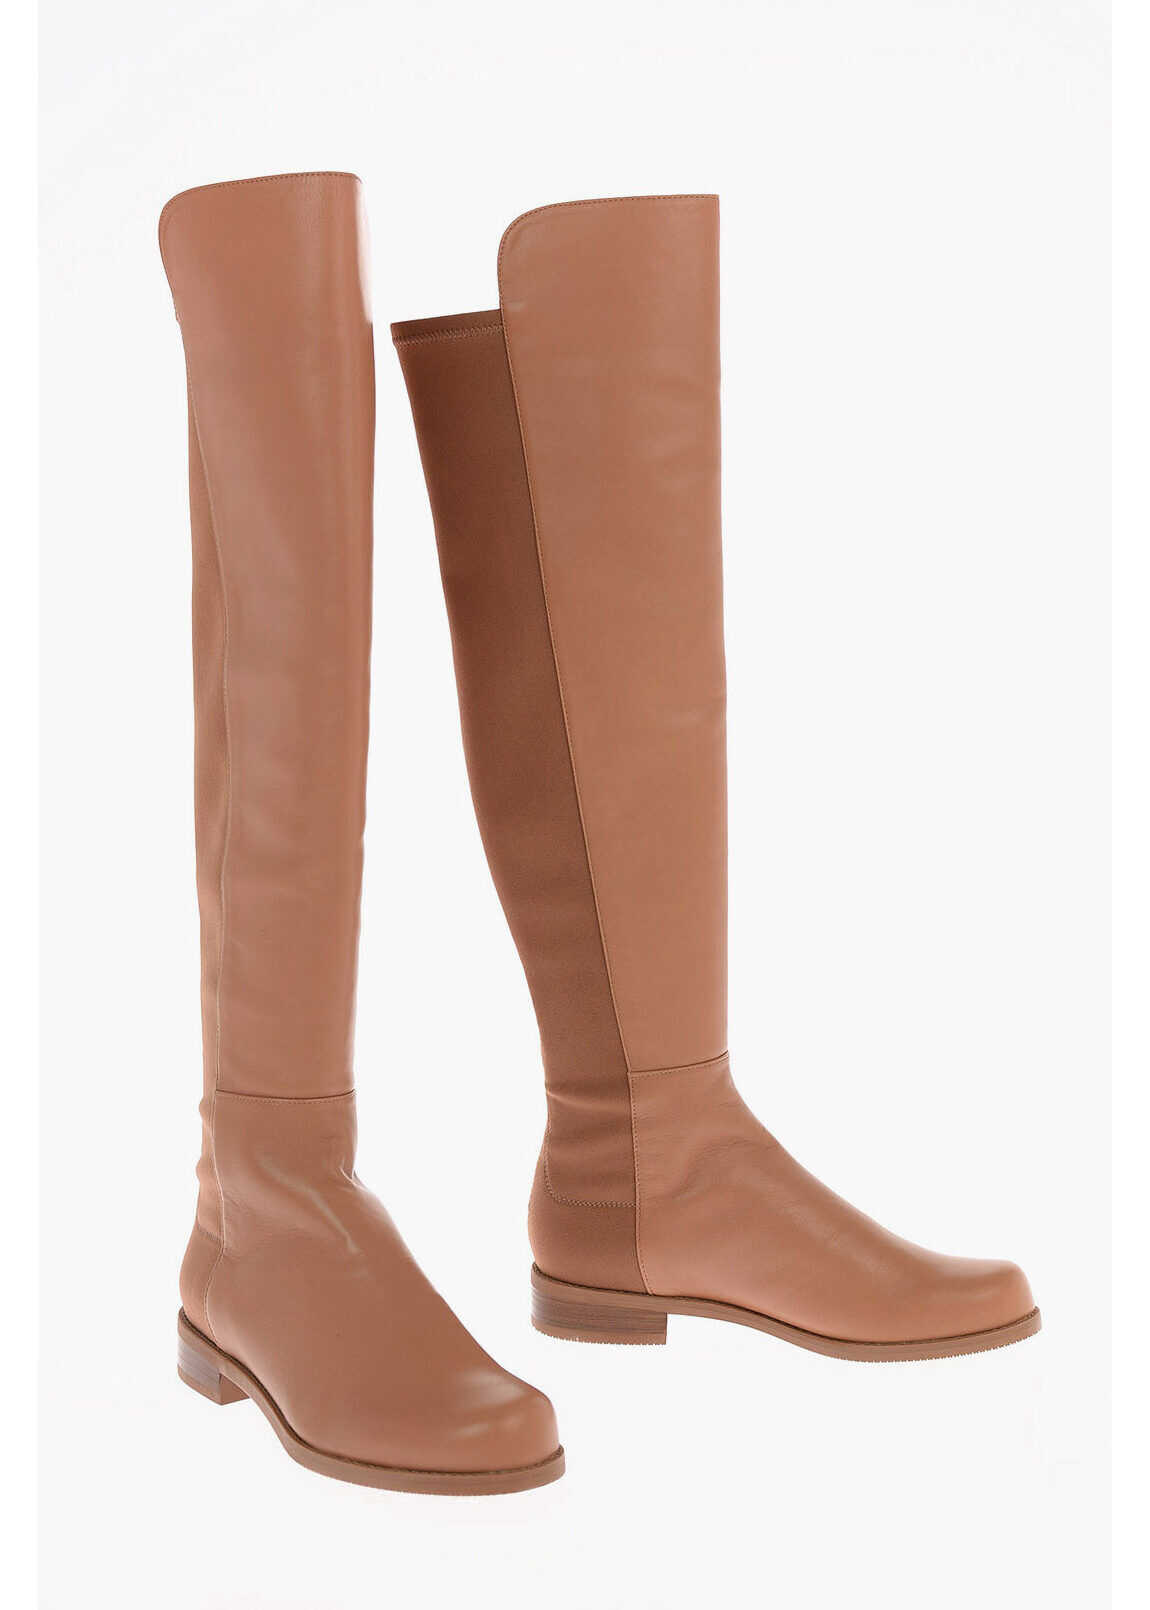 Stuart Weitzman Pull On 5050 Over the Knee Boots 3 cm BROWN imagine b-mall.ro